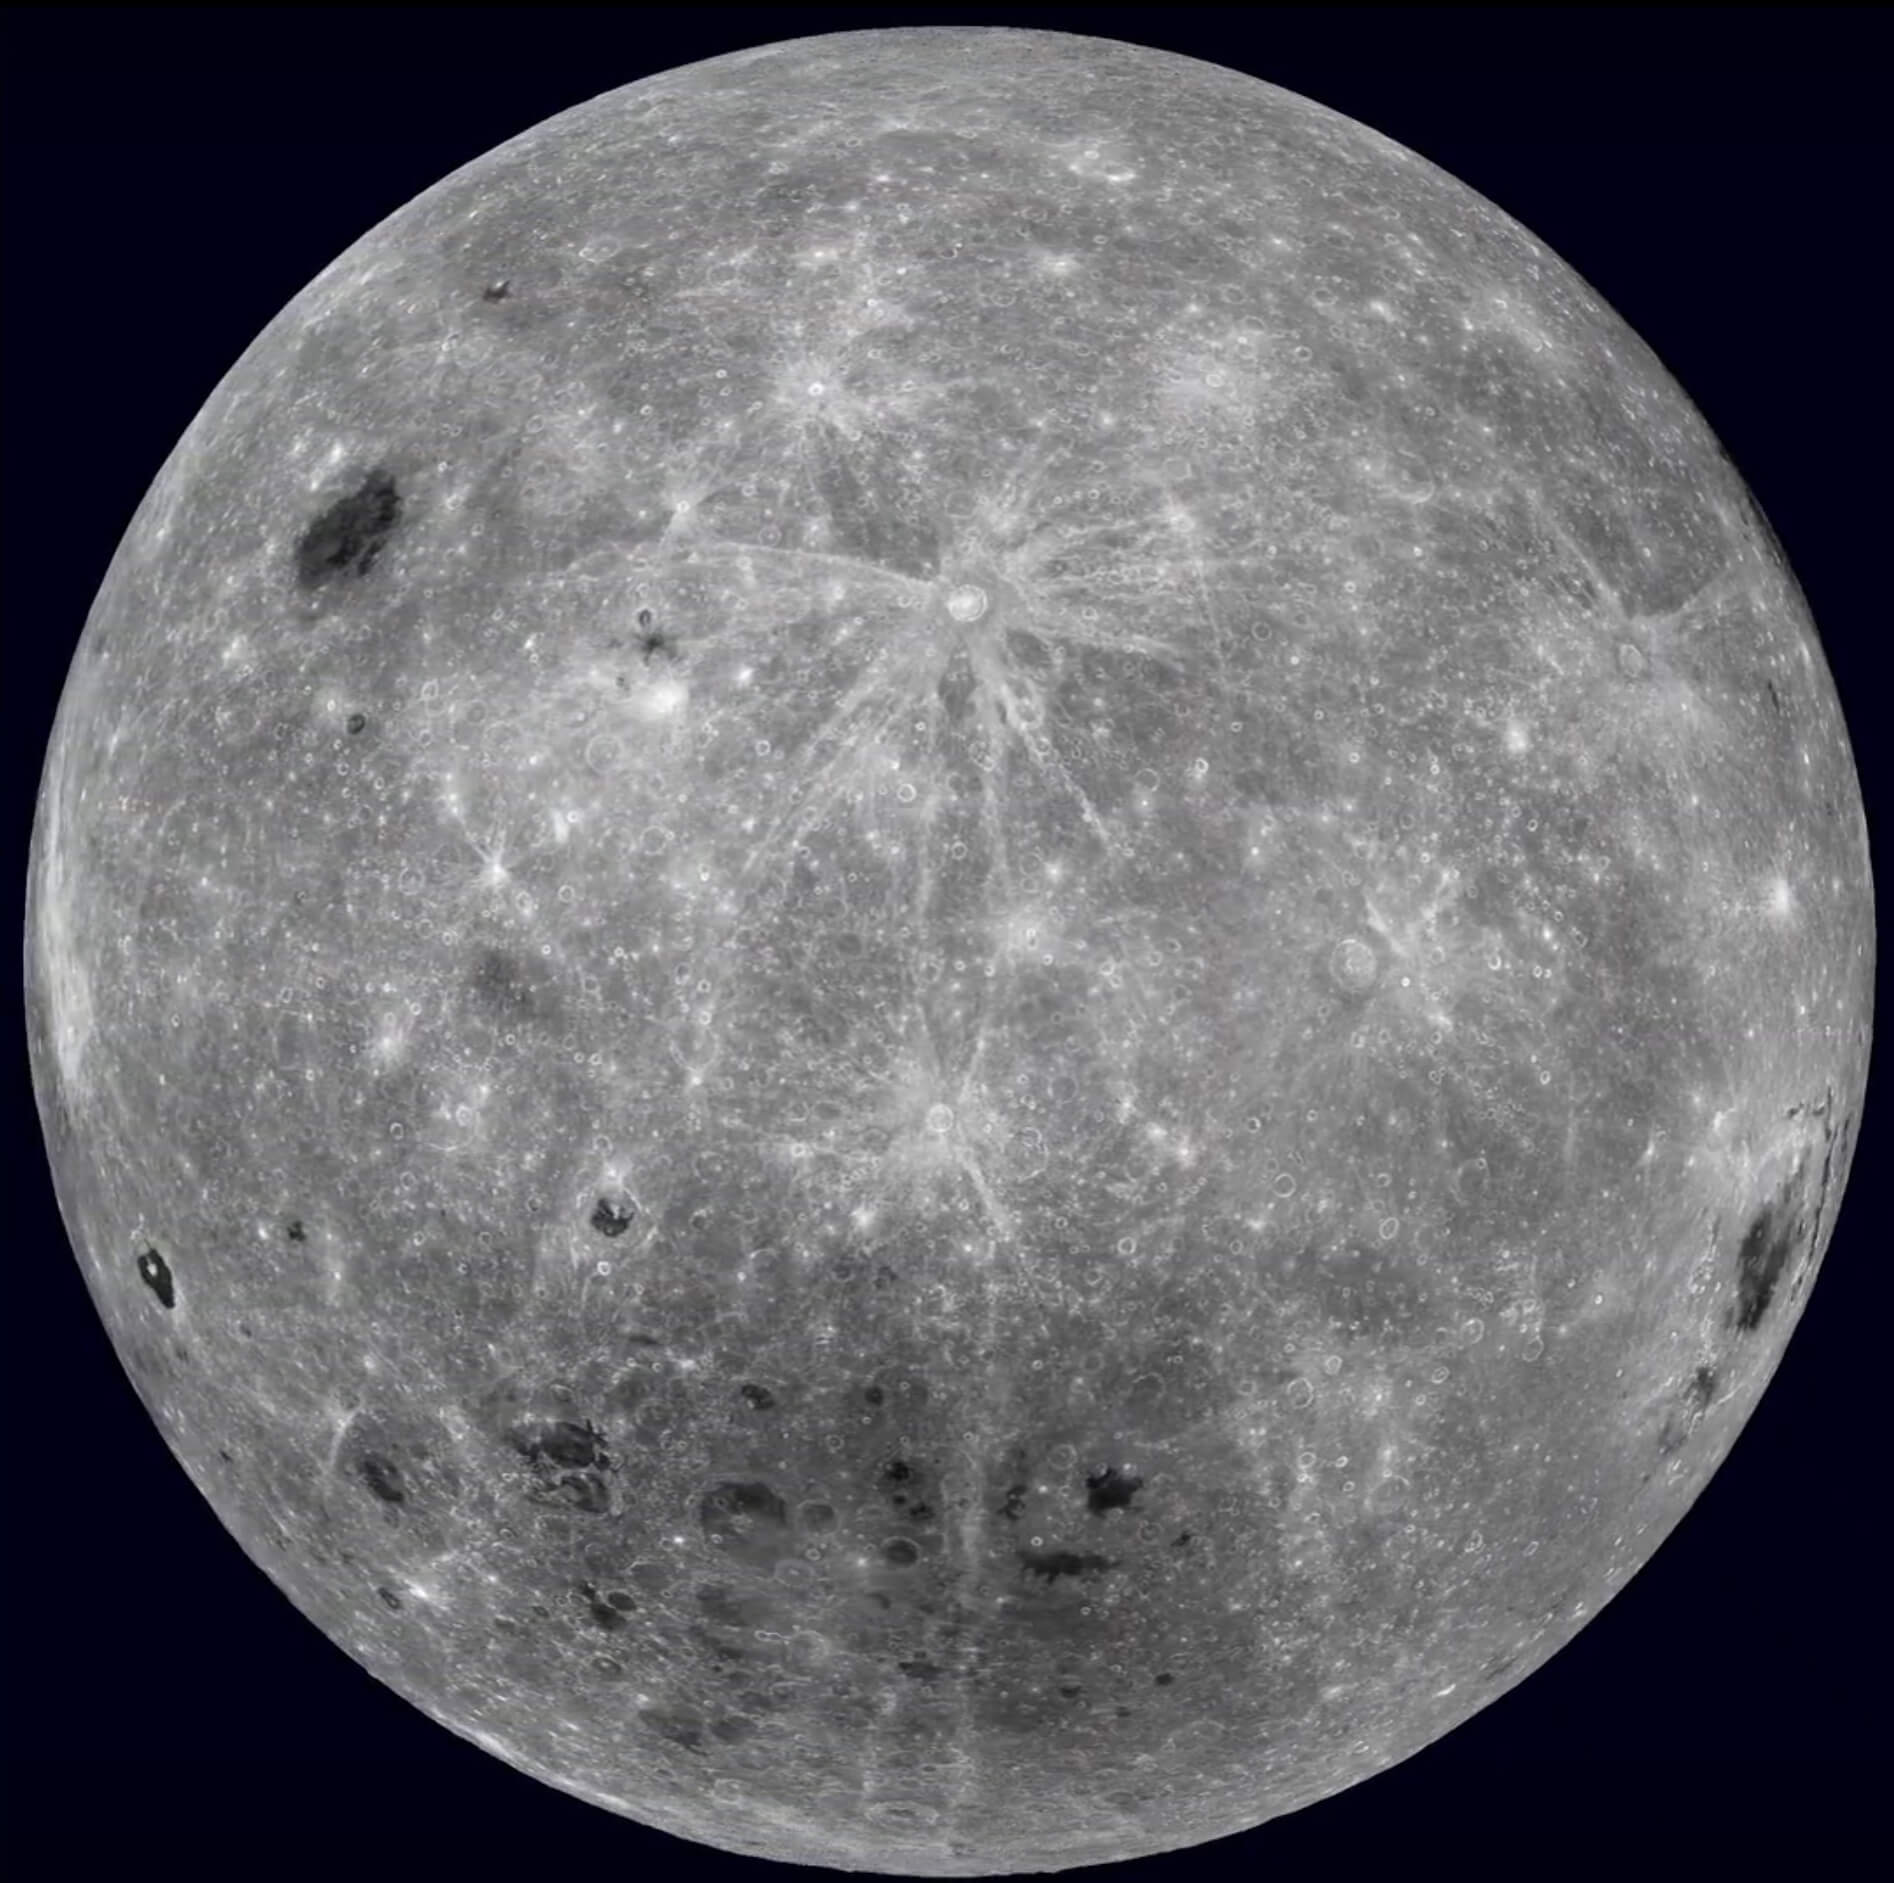 Image of the far side of the Moon